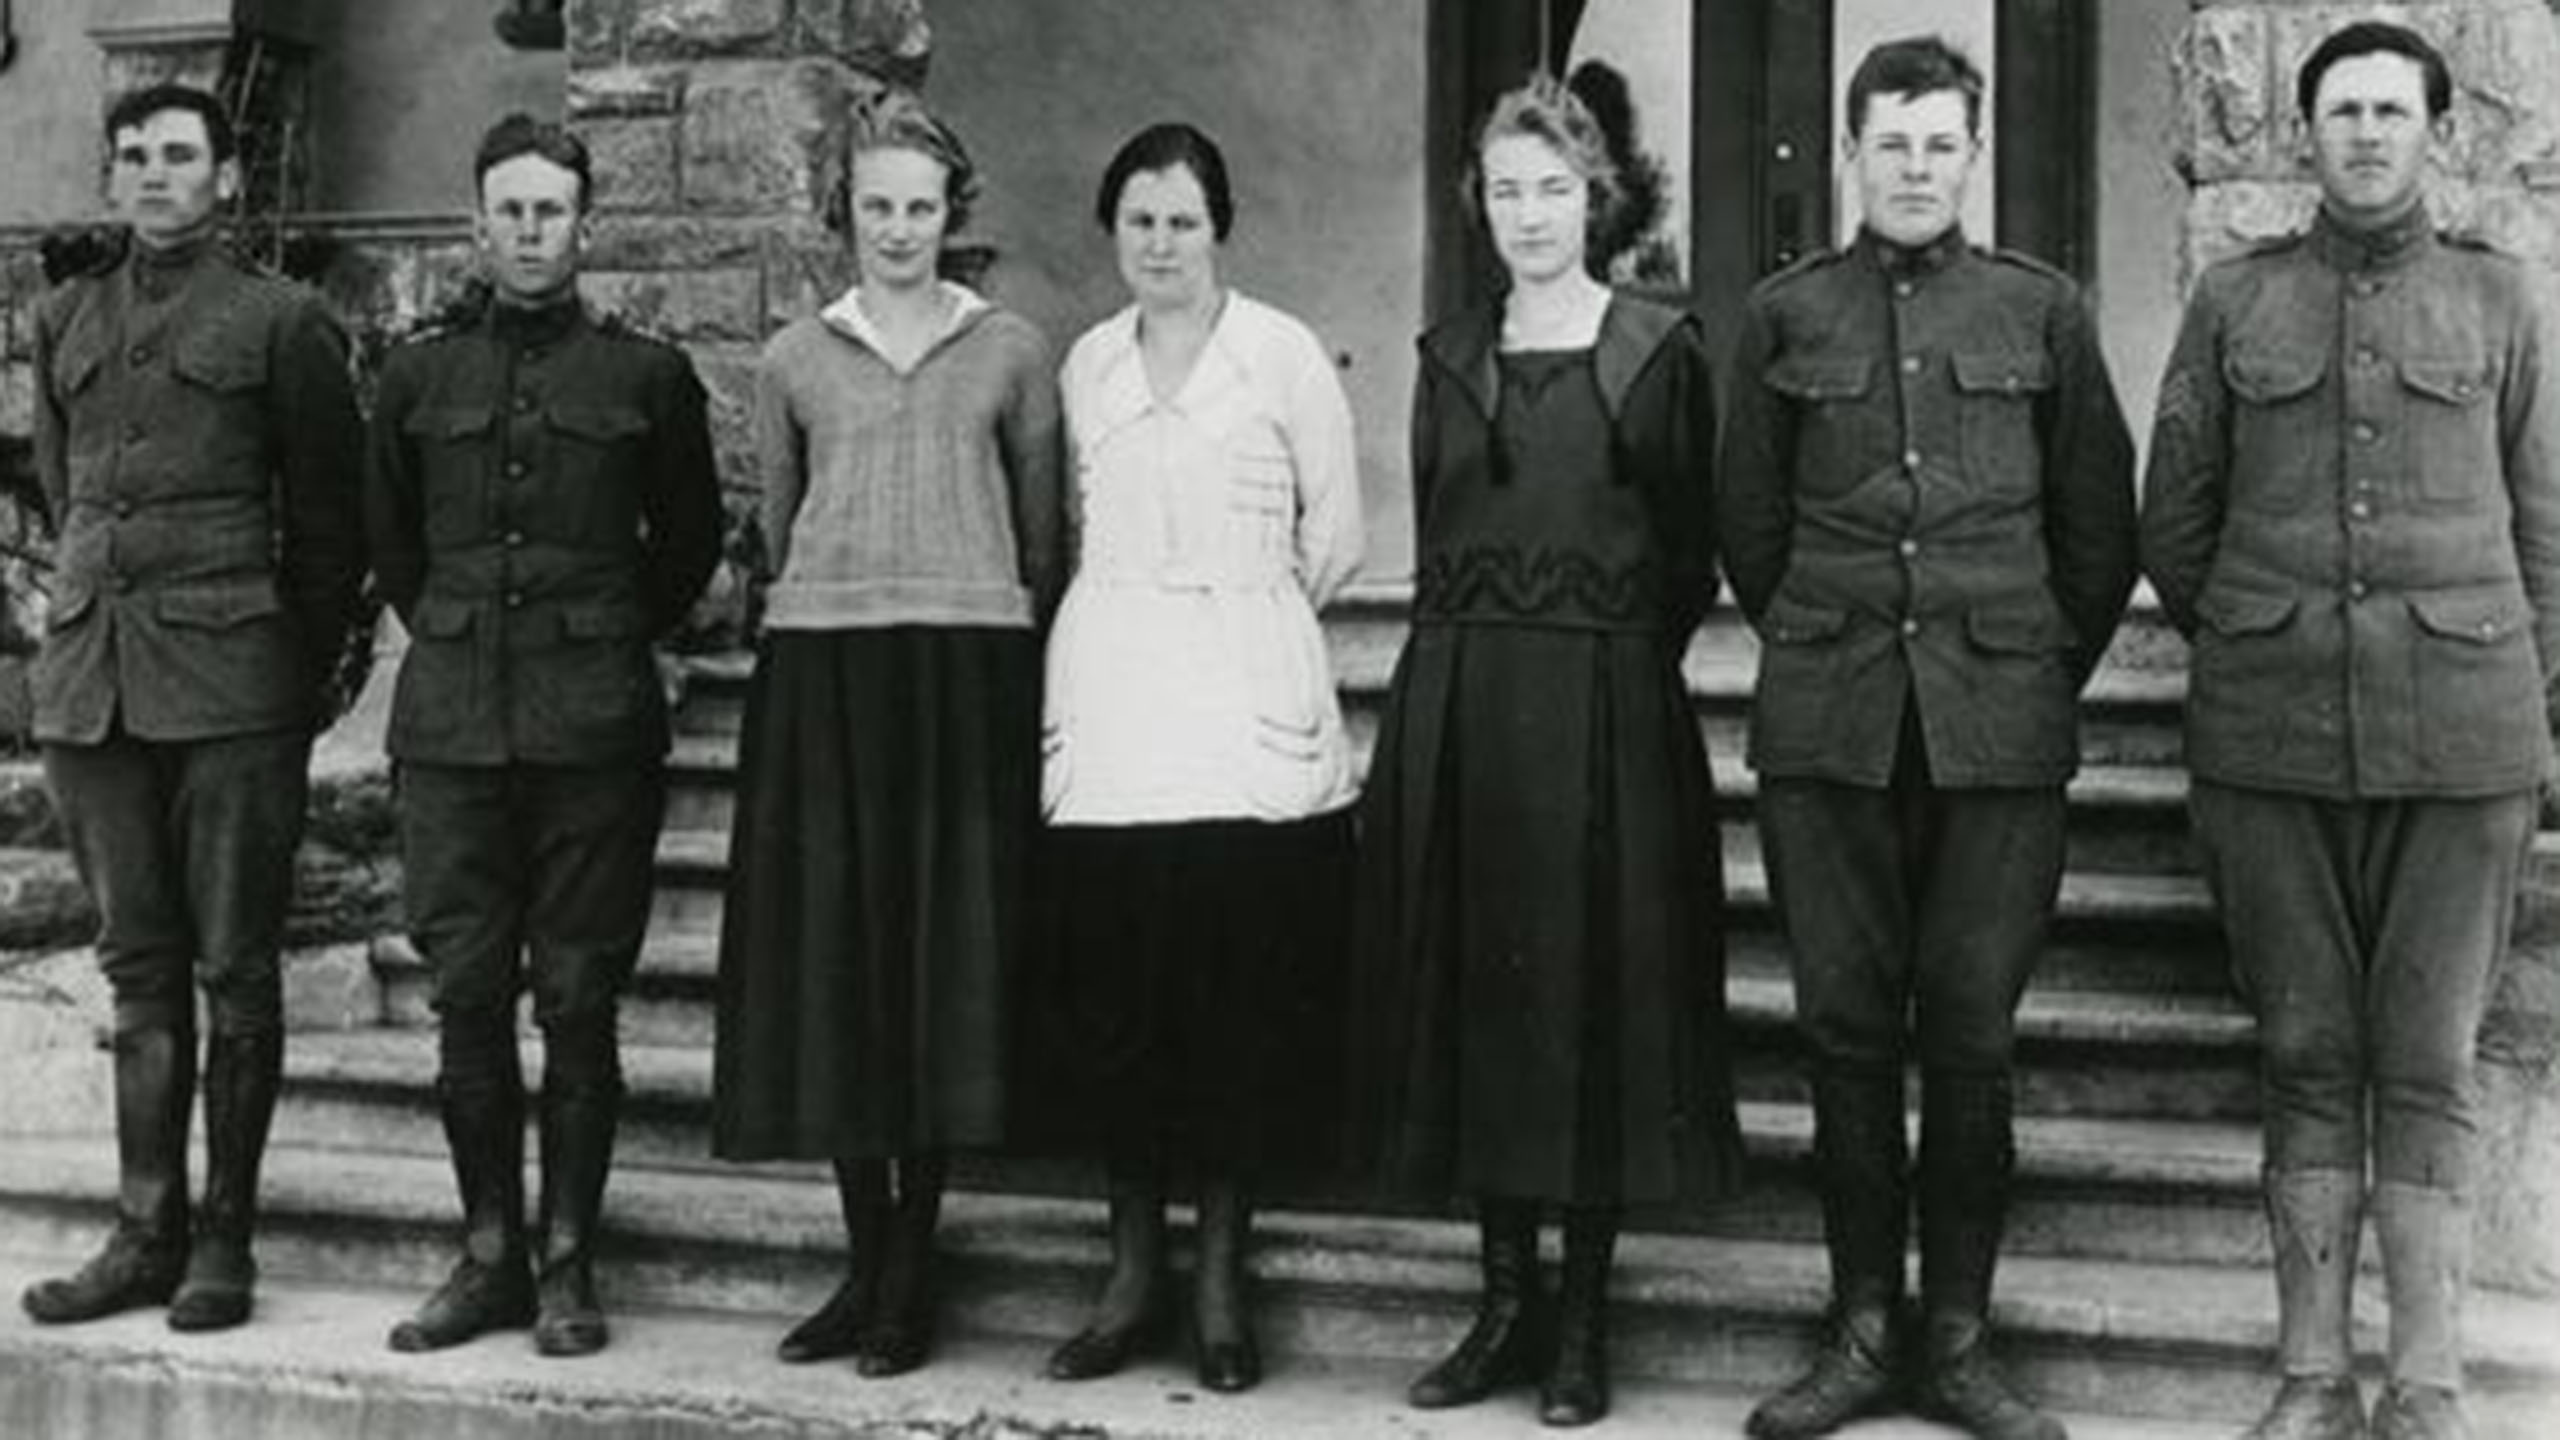 Seven students, men in early 20th-century military uniforms and women in long blouses and skirts, pose in front of a campus building in a vintage photo